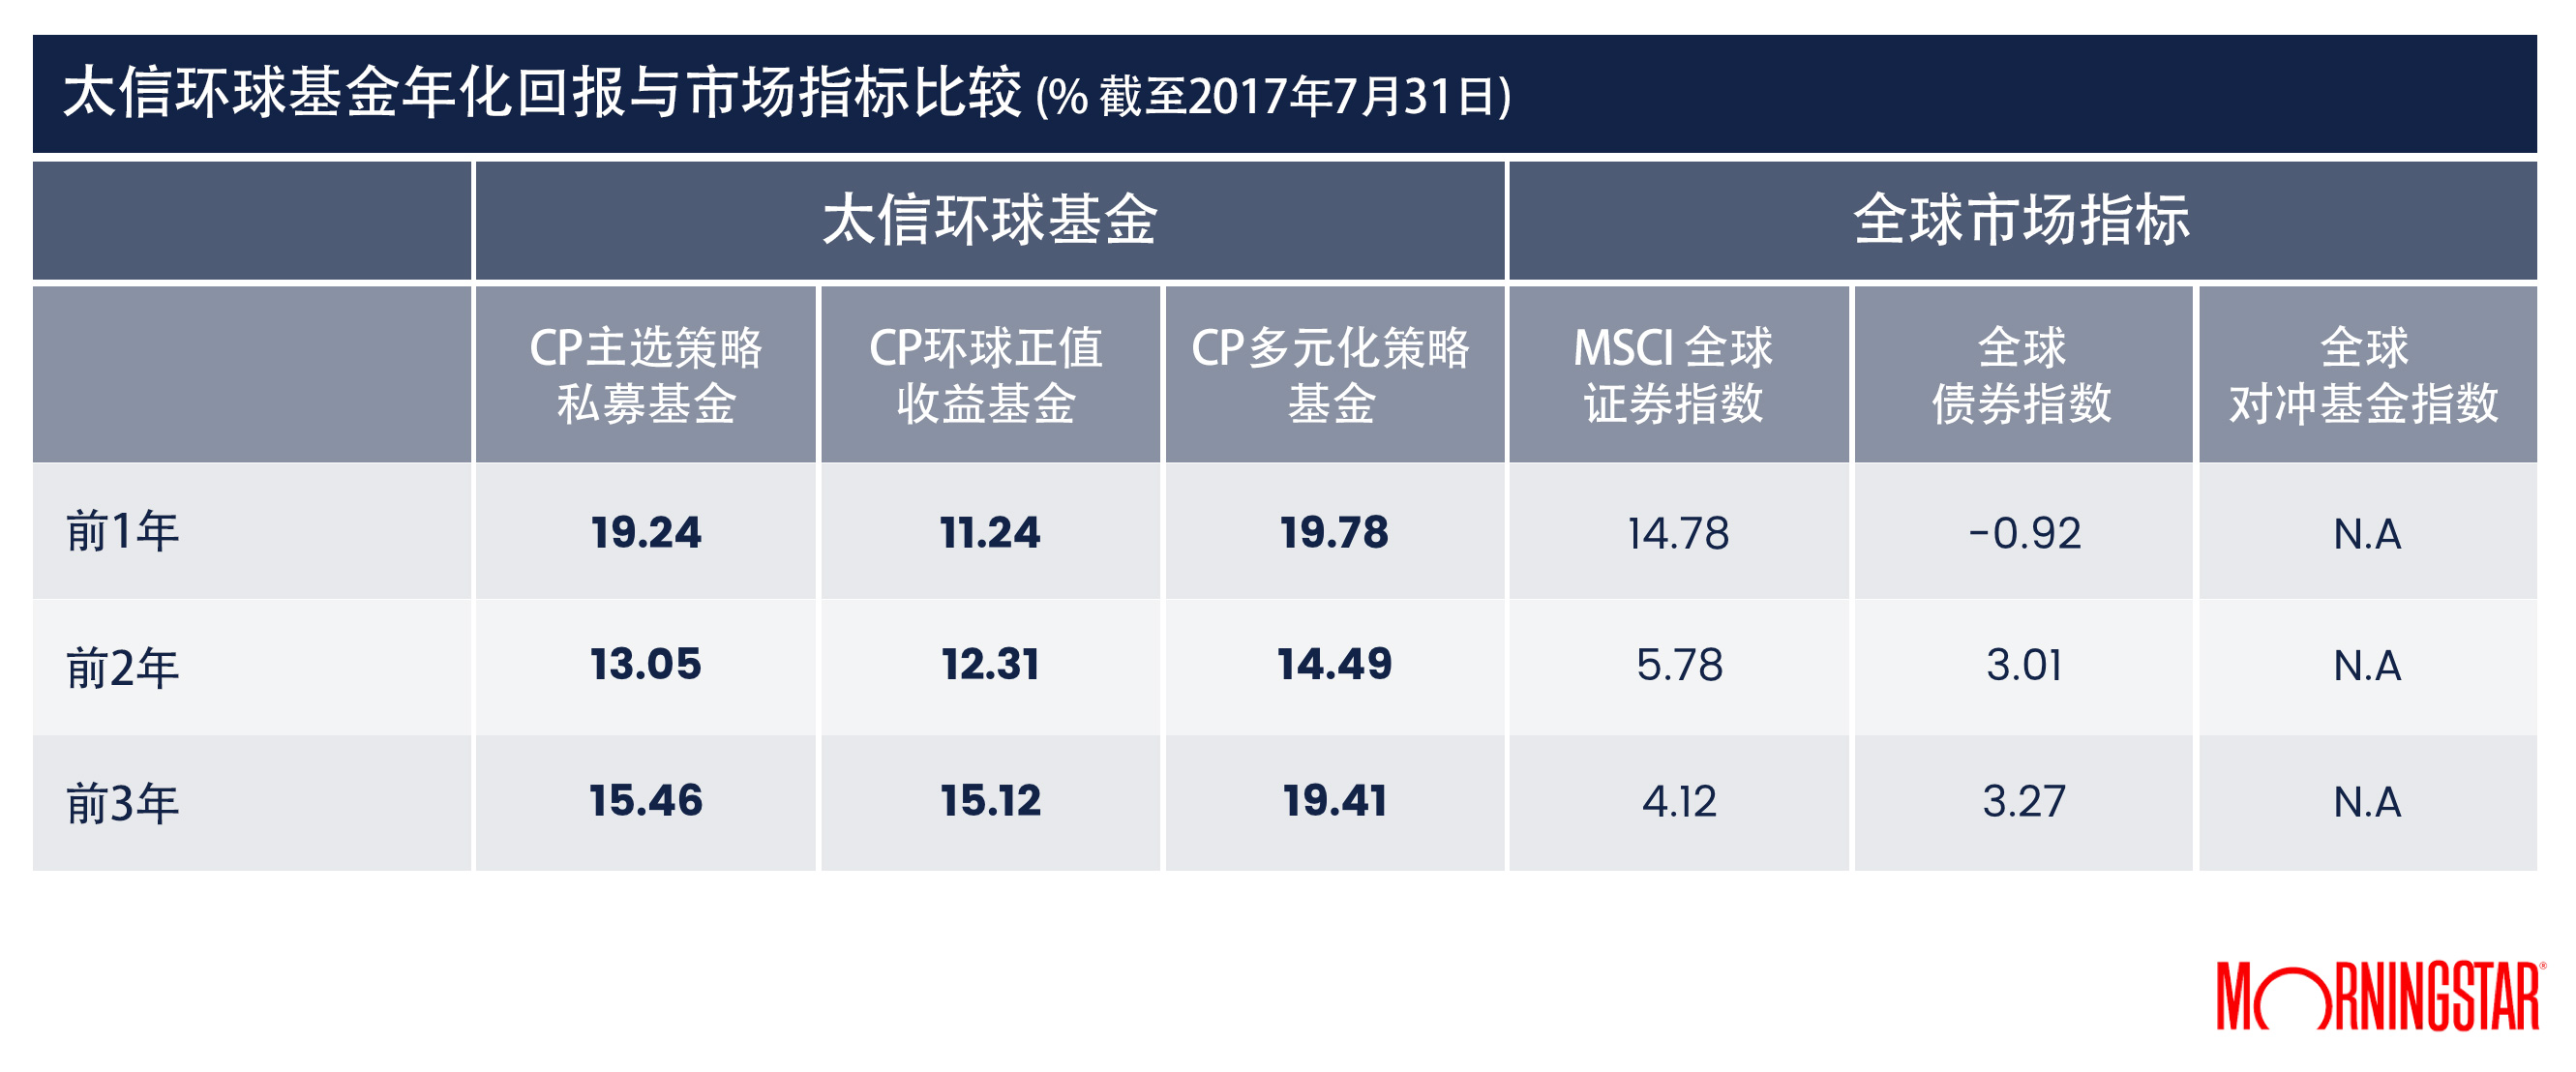 cp-global-funds-annualized-performance-against-benchmarks-31jul2017-chinese